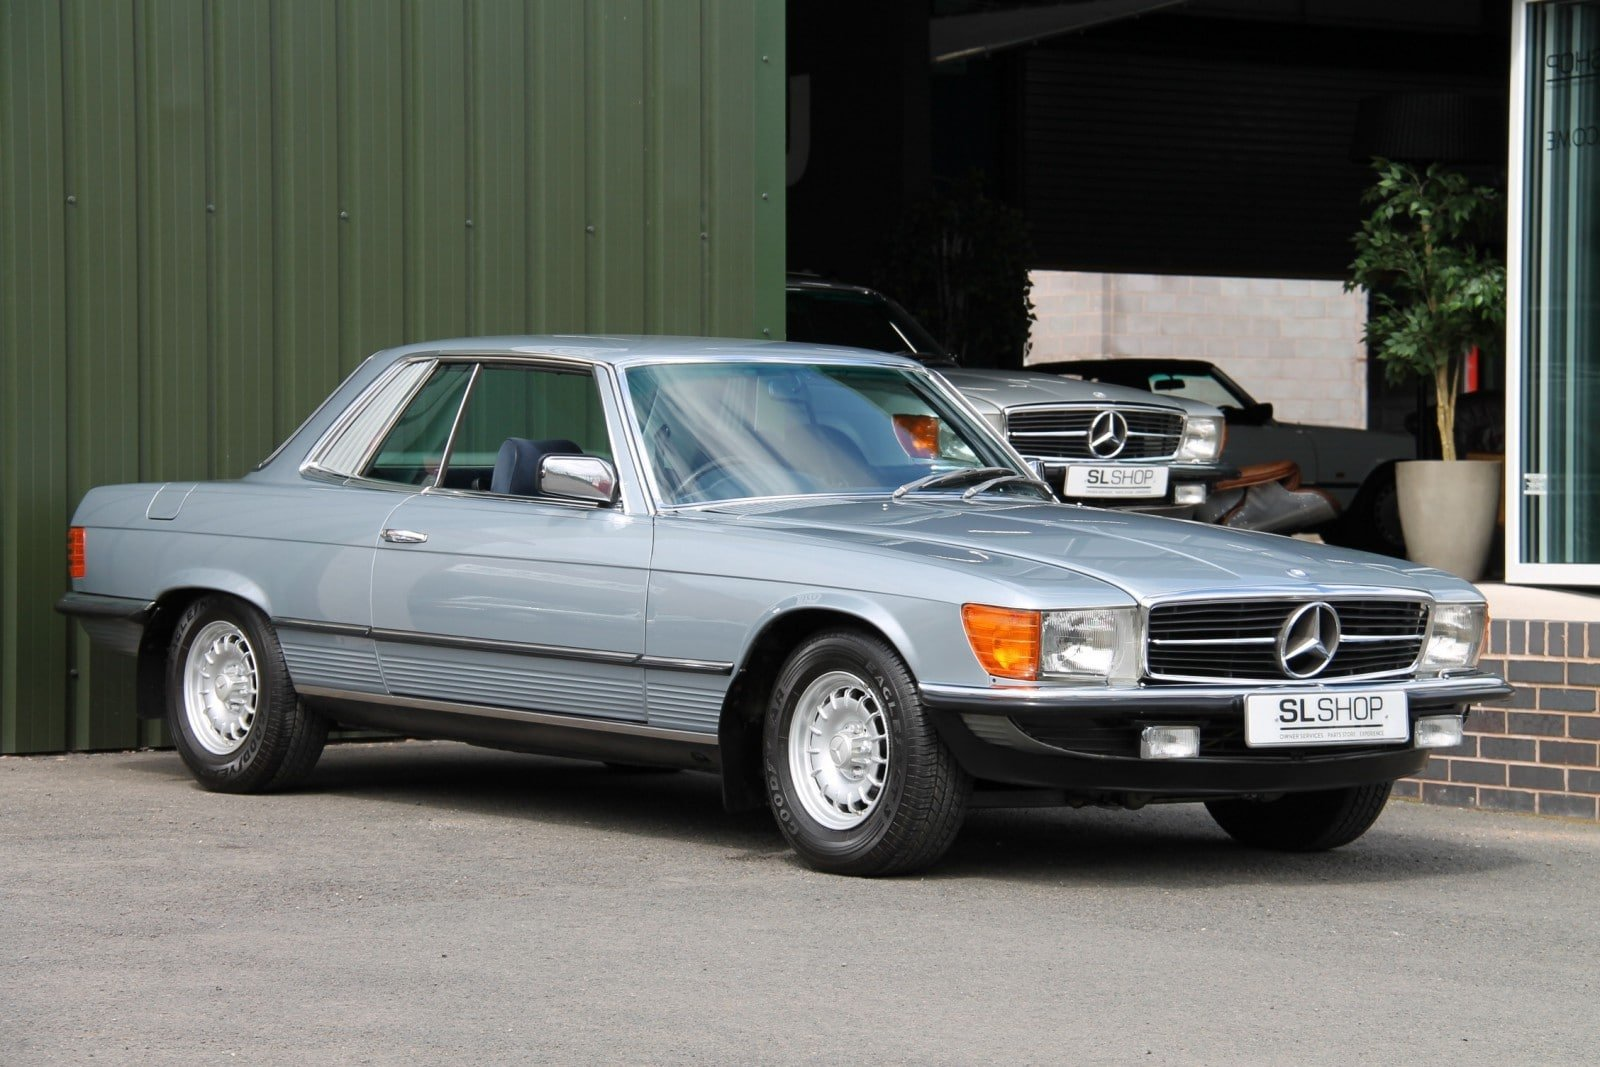 1981 Mercedes-Benz 380 SLC Stock No 2118 For Sale (picture 1 of 6)